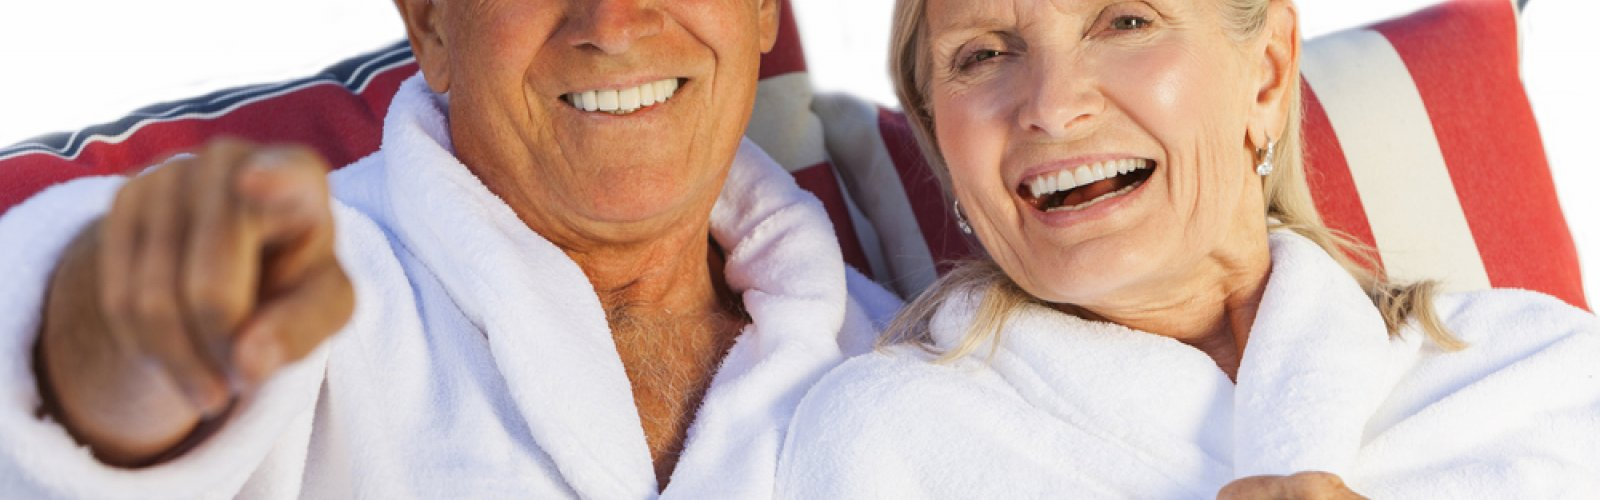 Spa for seniors (3 days/ 2 nights)